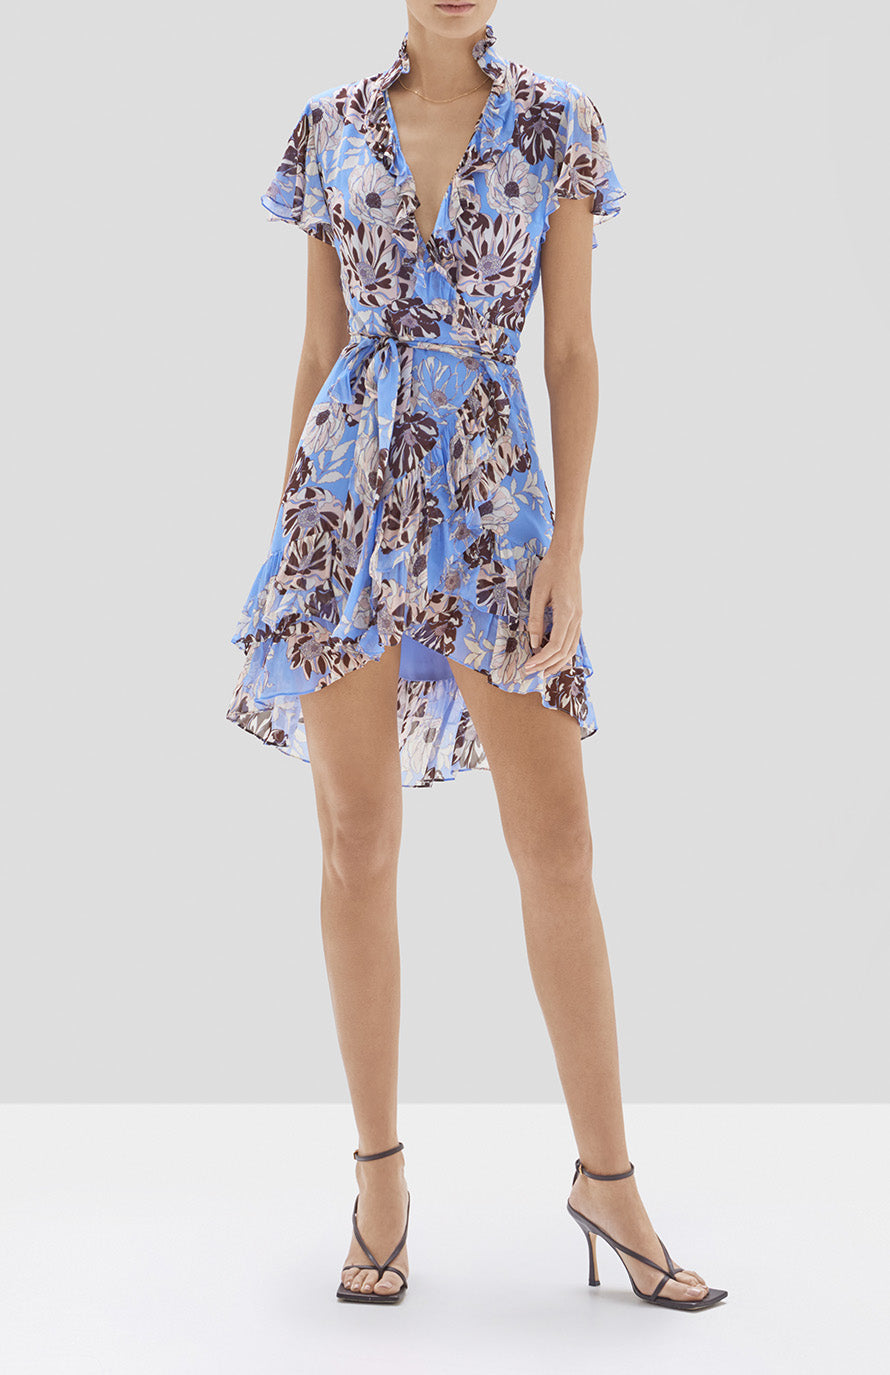 Alexis Melyssa Dress in Blue Floral from Pre Spring 2020 Collection - Rear View